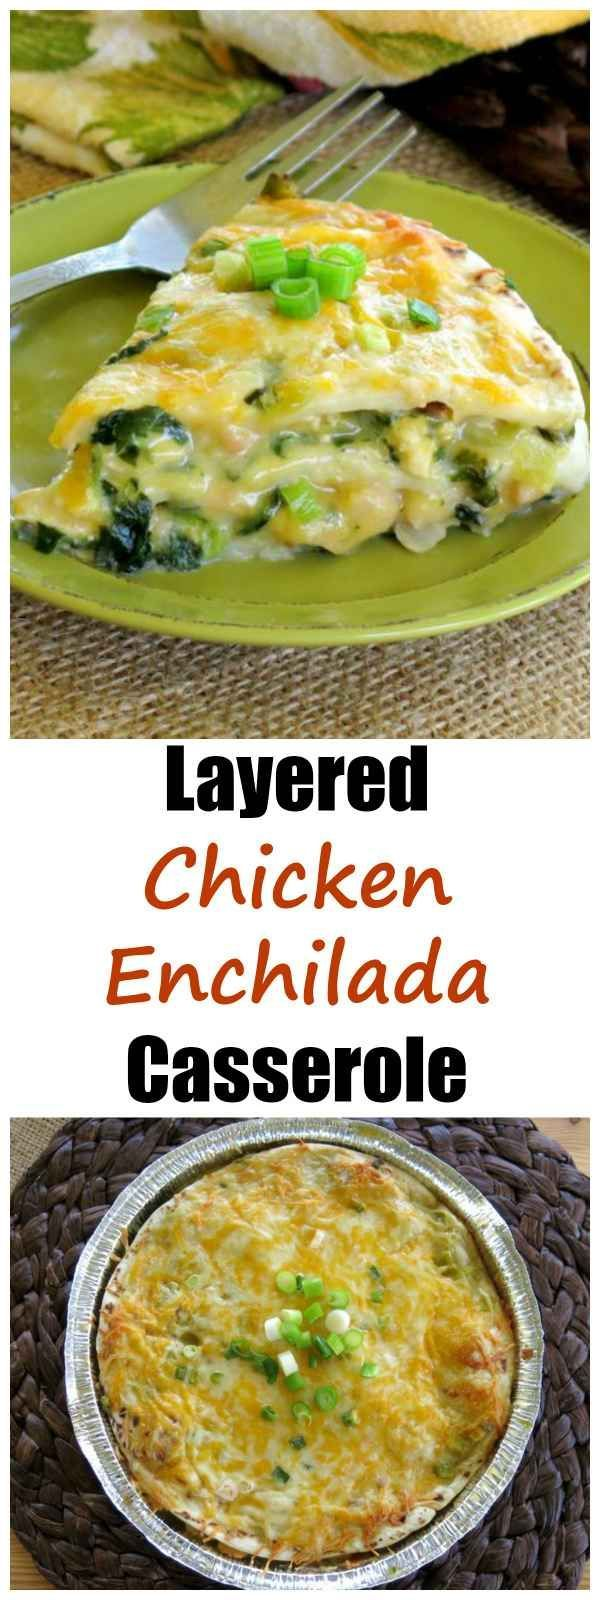 Layered Chicken Enchilada Pie recipe is a casserole twist on this Mexican favorite. Tips to make and freeze so you can enjoy this comfort food any time! #chickenenchilada #casserole #mexican